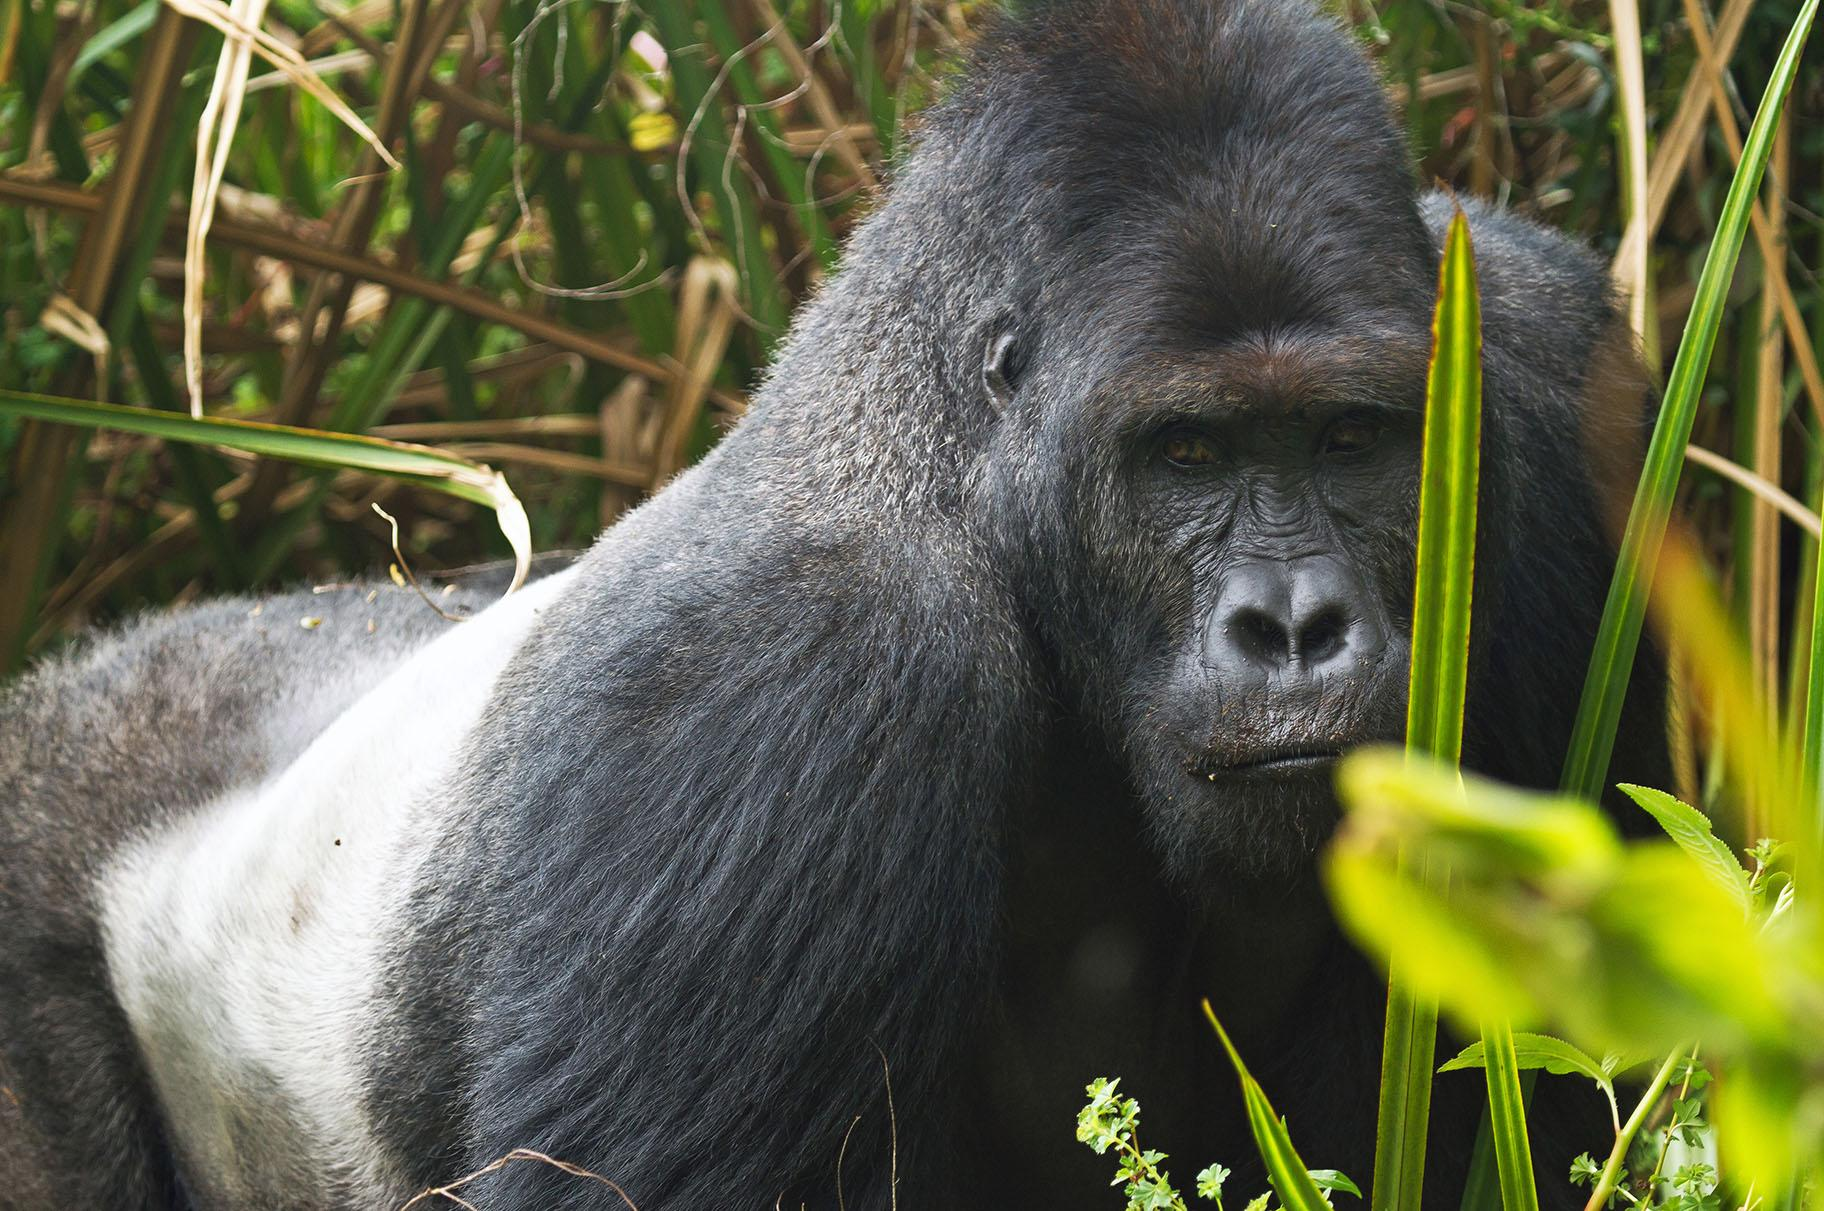 A gorilla at Kahuzi-Biega National Park in the Democratic Republic of Congo (Joe McKenna / Wikimedia Commons)